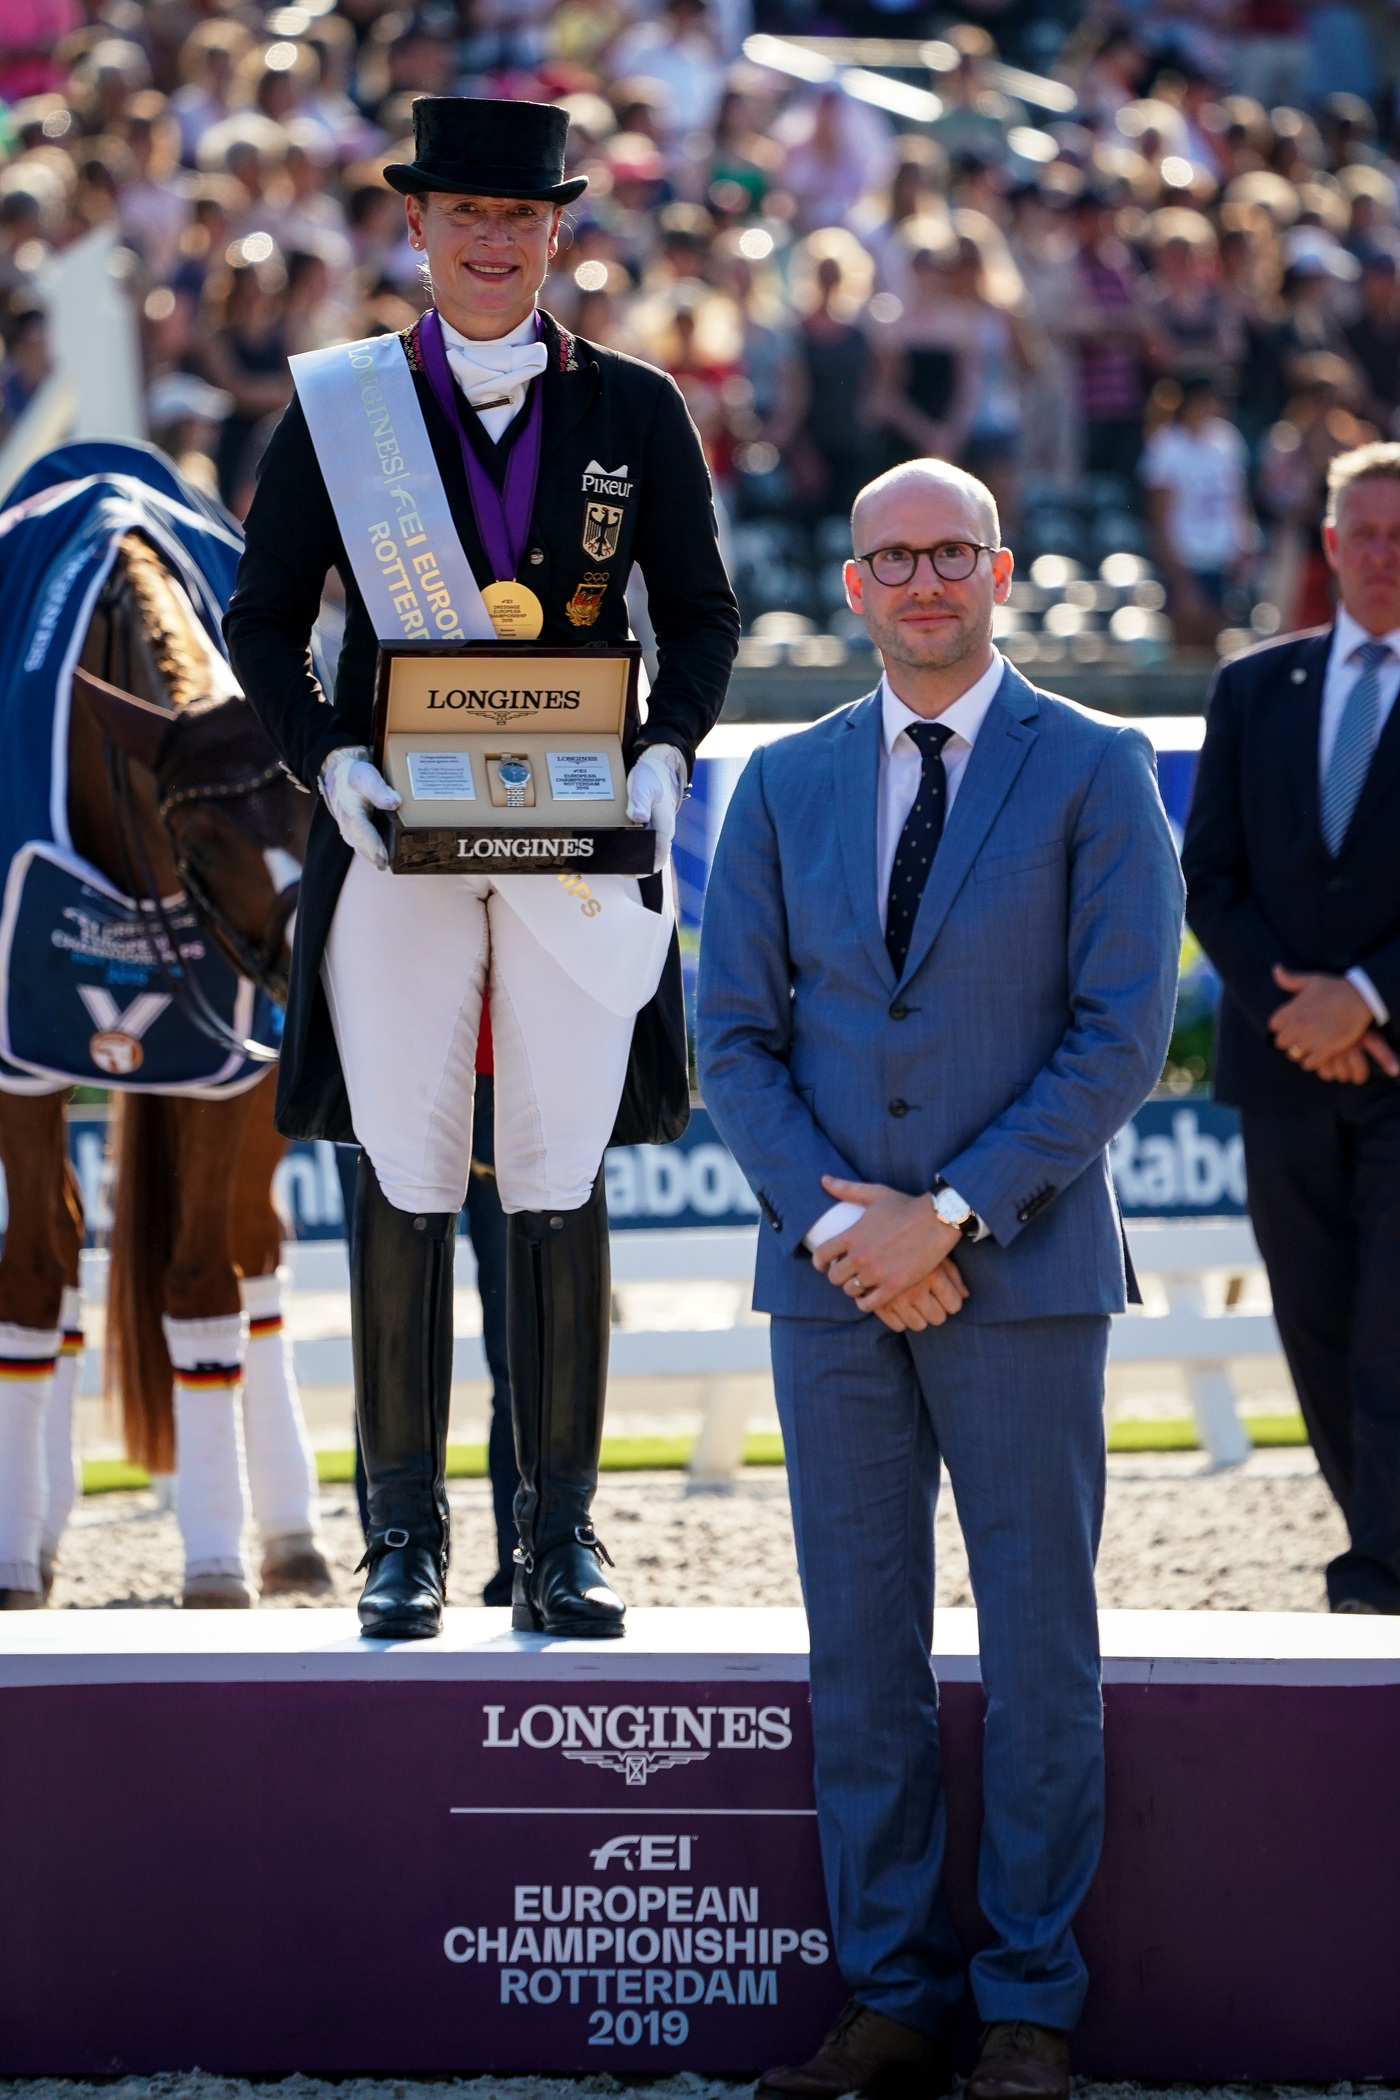 Longines Show Jumping Event: One week of captivating competitions and exceptional performances at the Longines FEI European Championships 2019 5